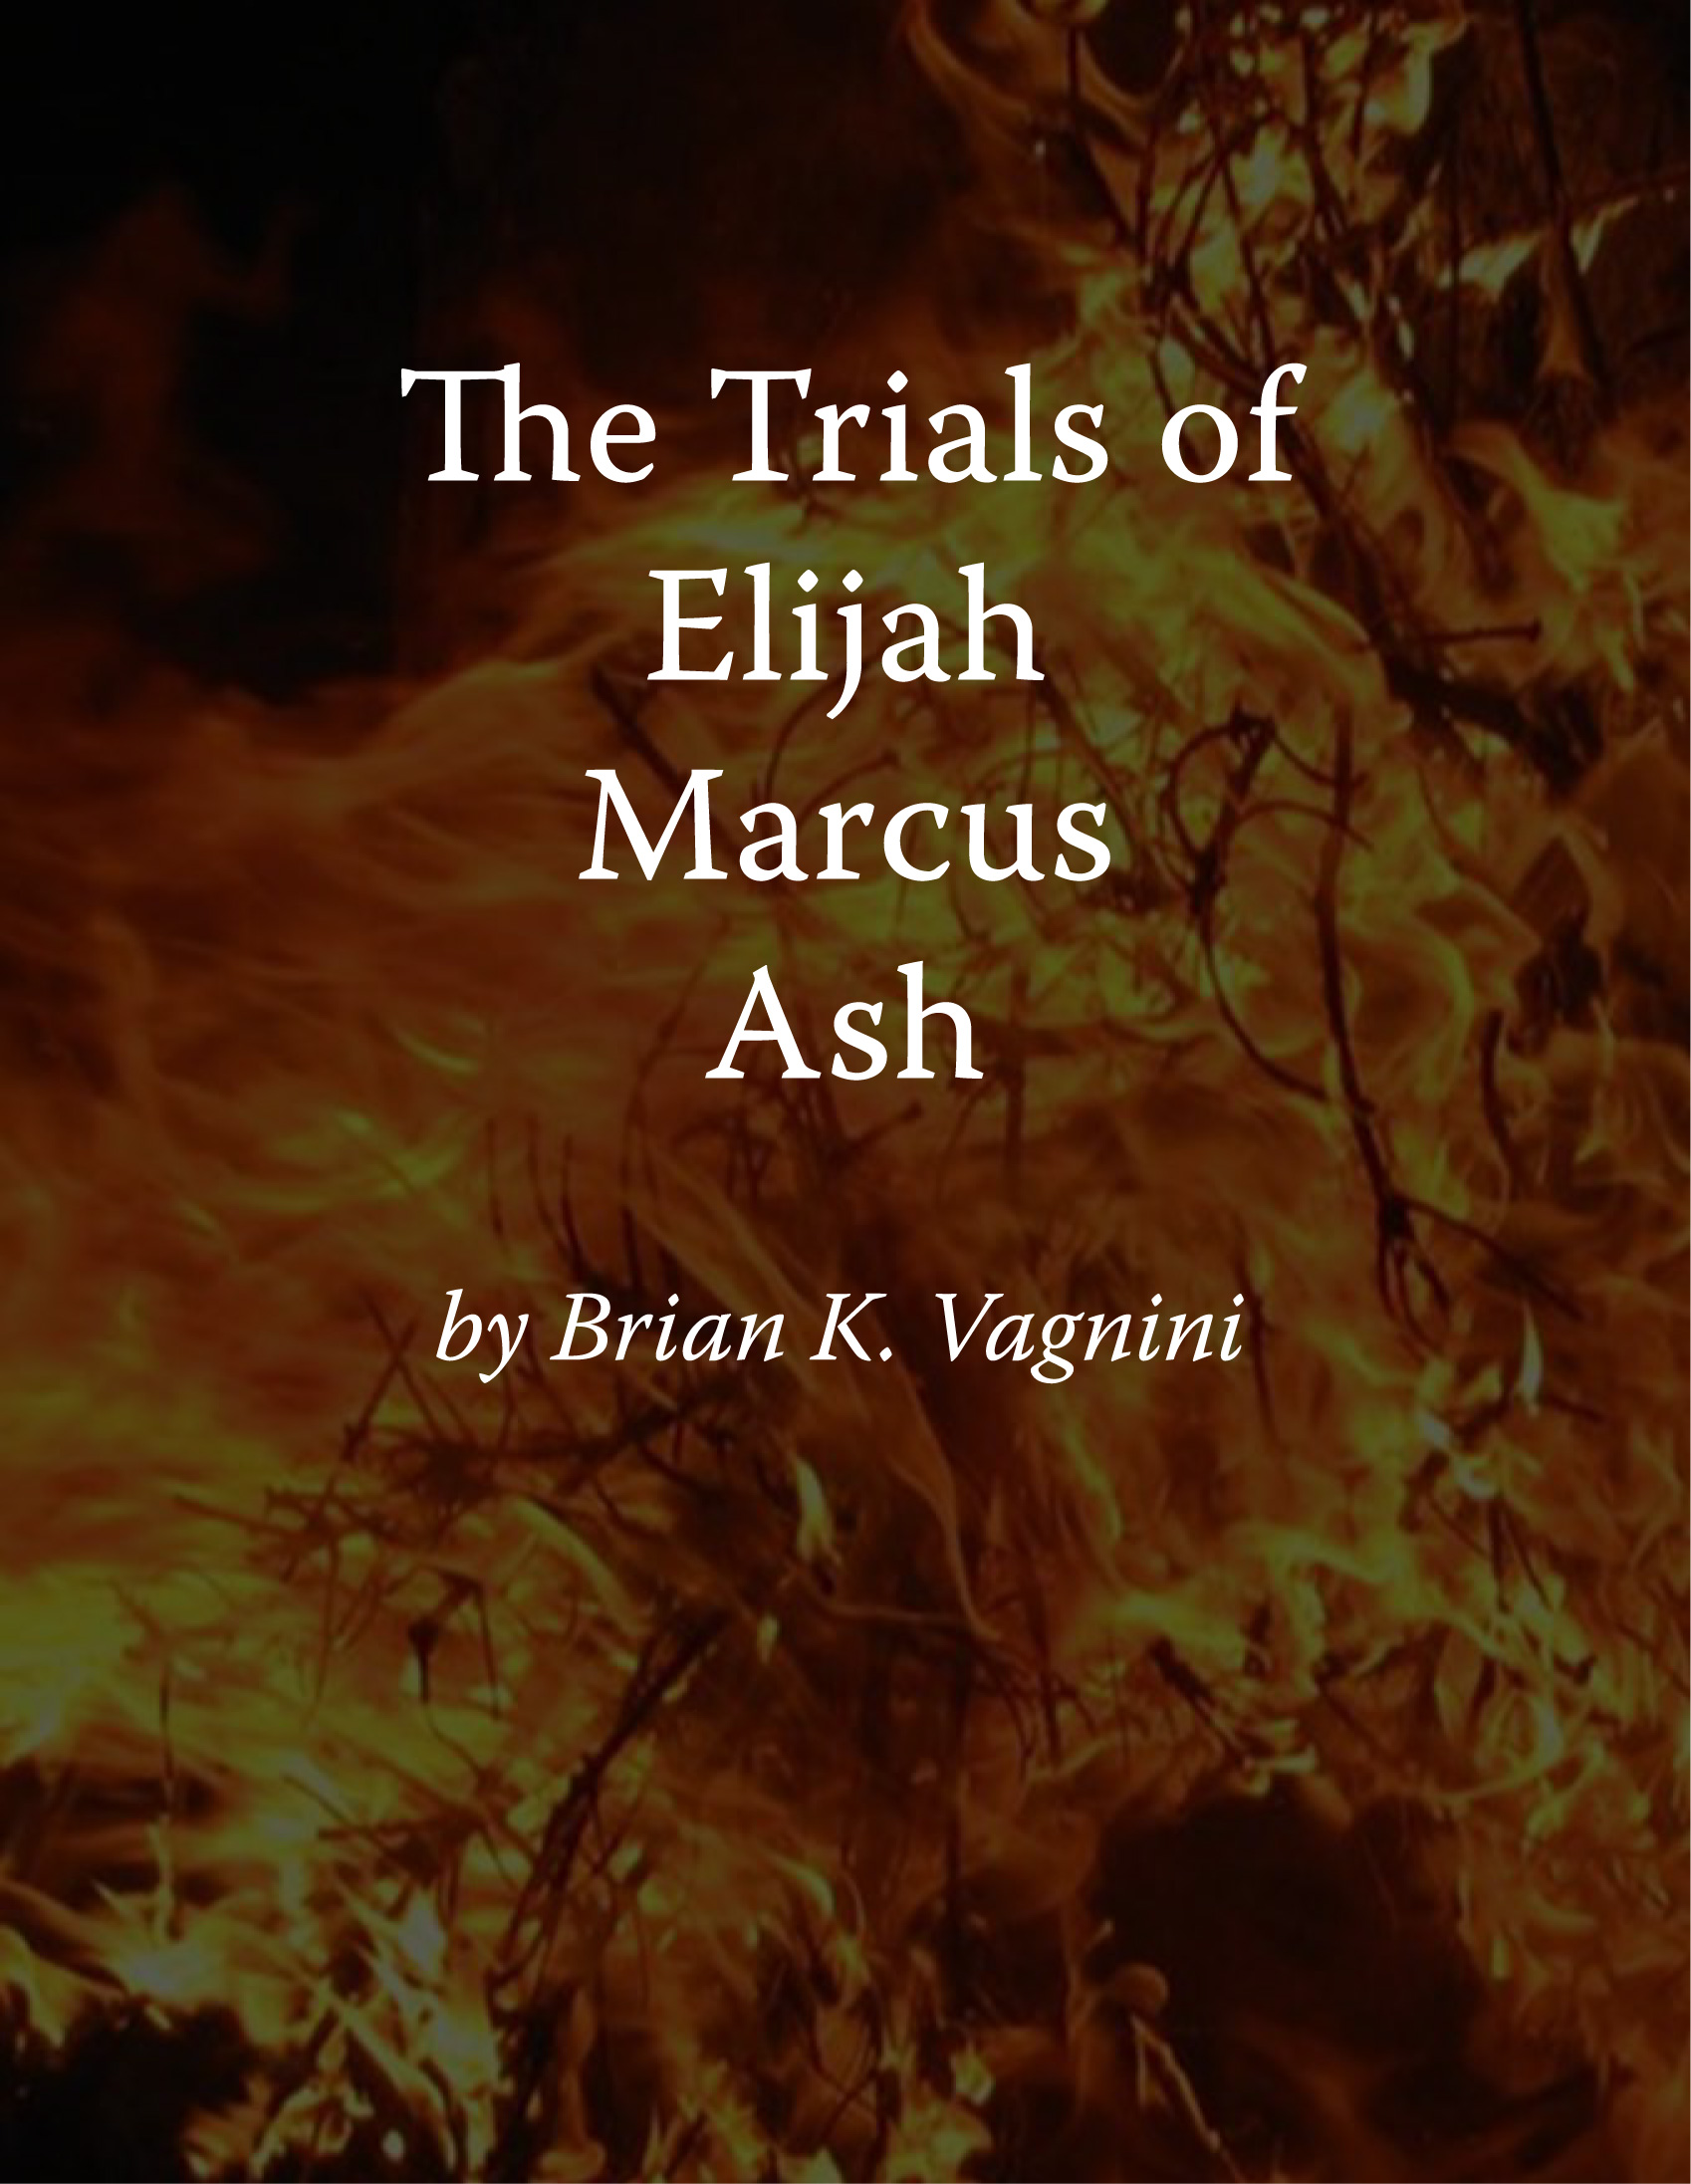 Cover of The Trials of Elijah Marcus Ash book, book 2